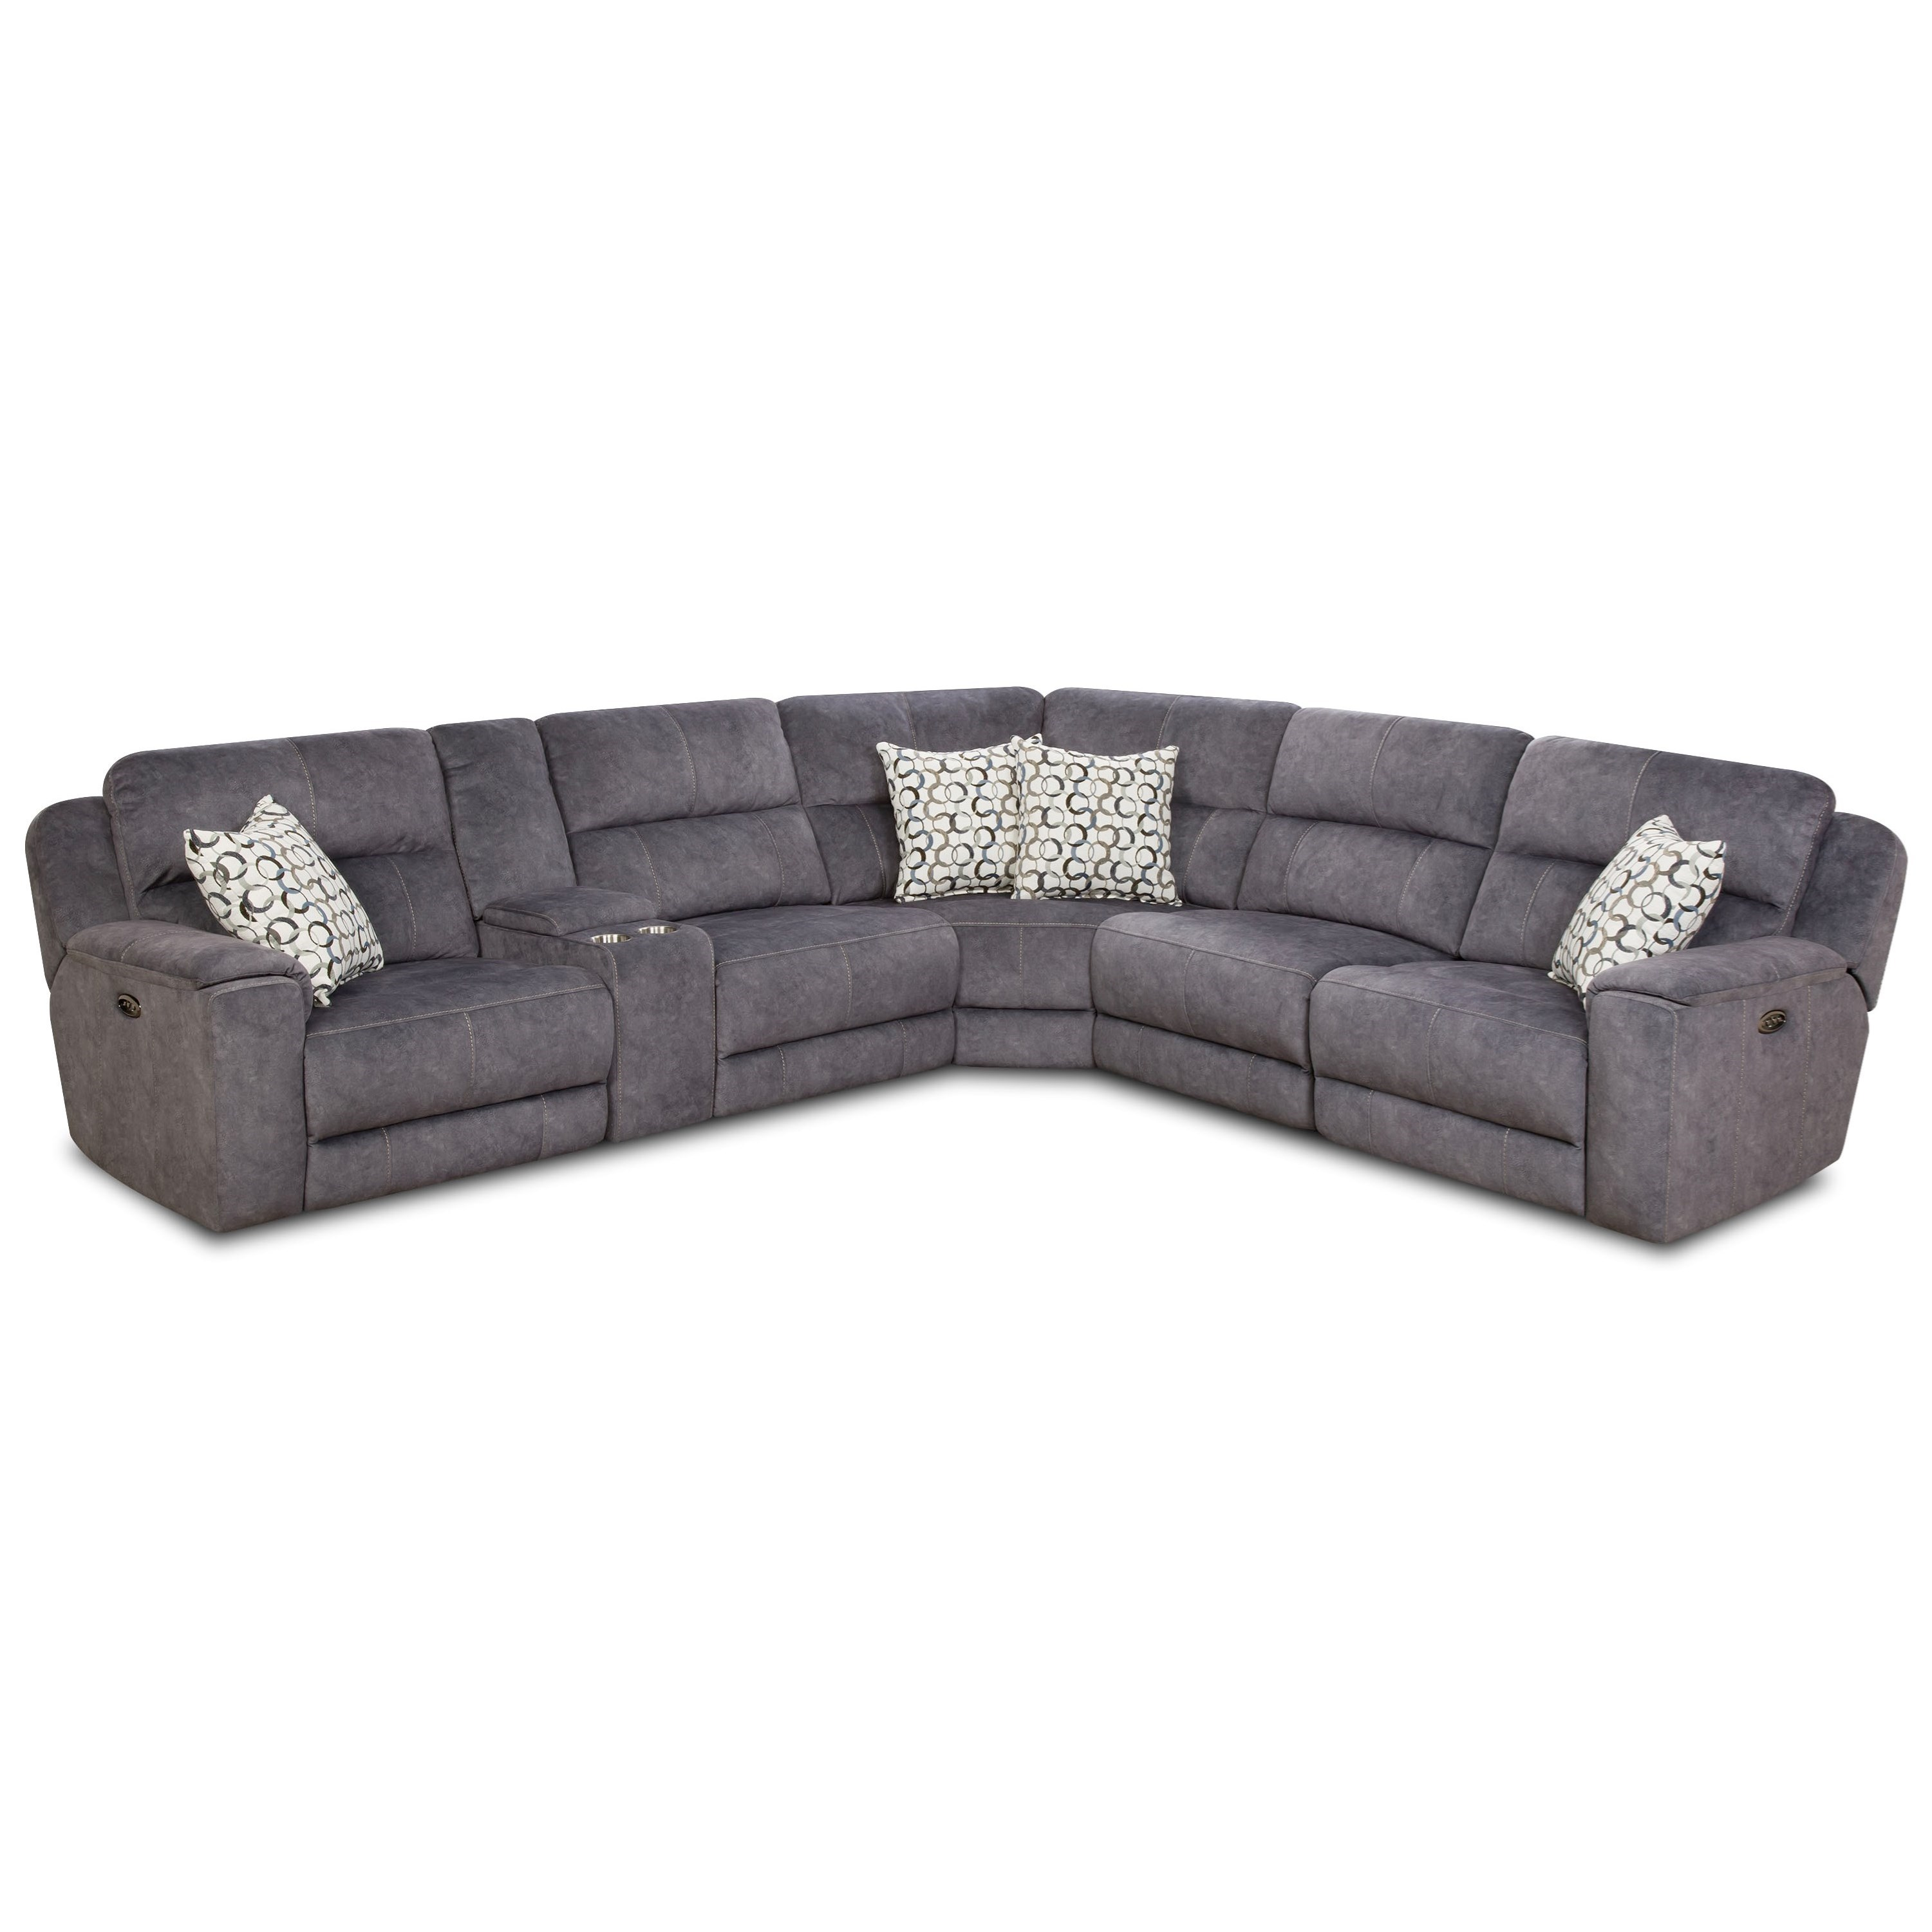 79003 Reclining Sectional Sofa (2 Recliners) by Powell's V.I.P. at Powell's Furniture and Mattress